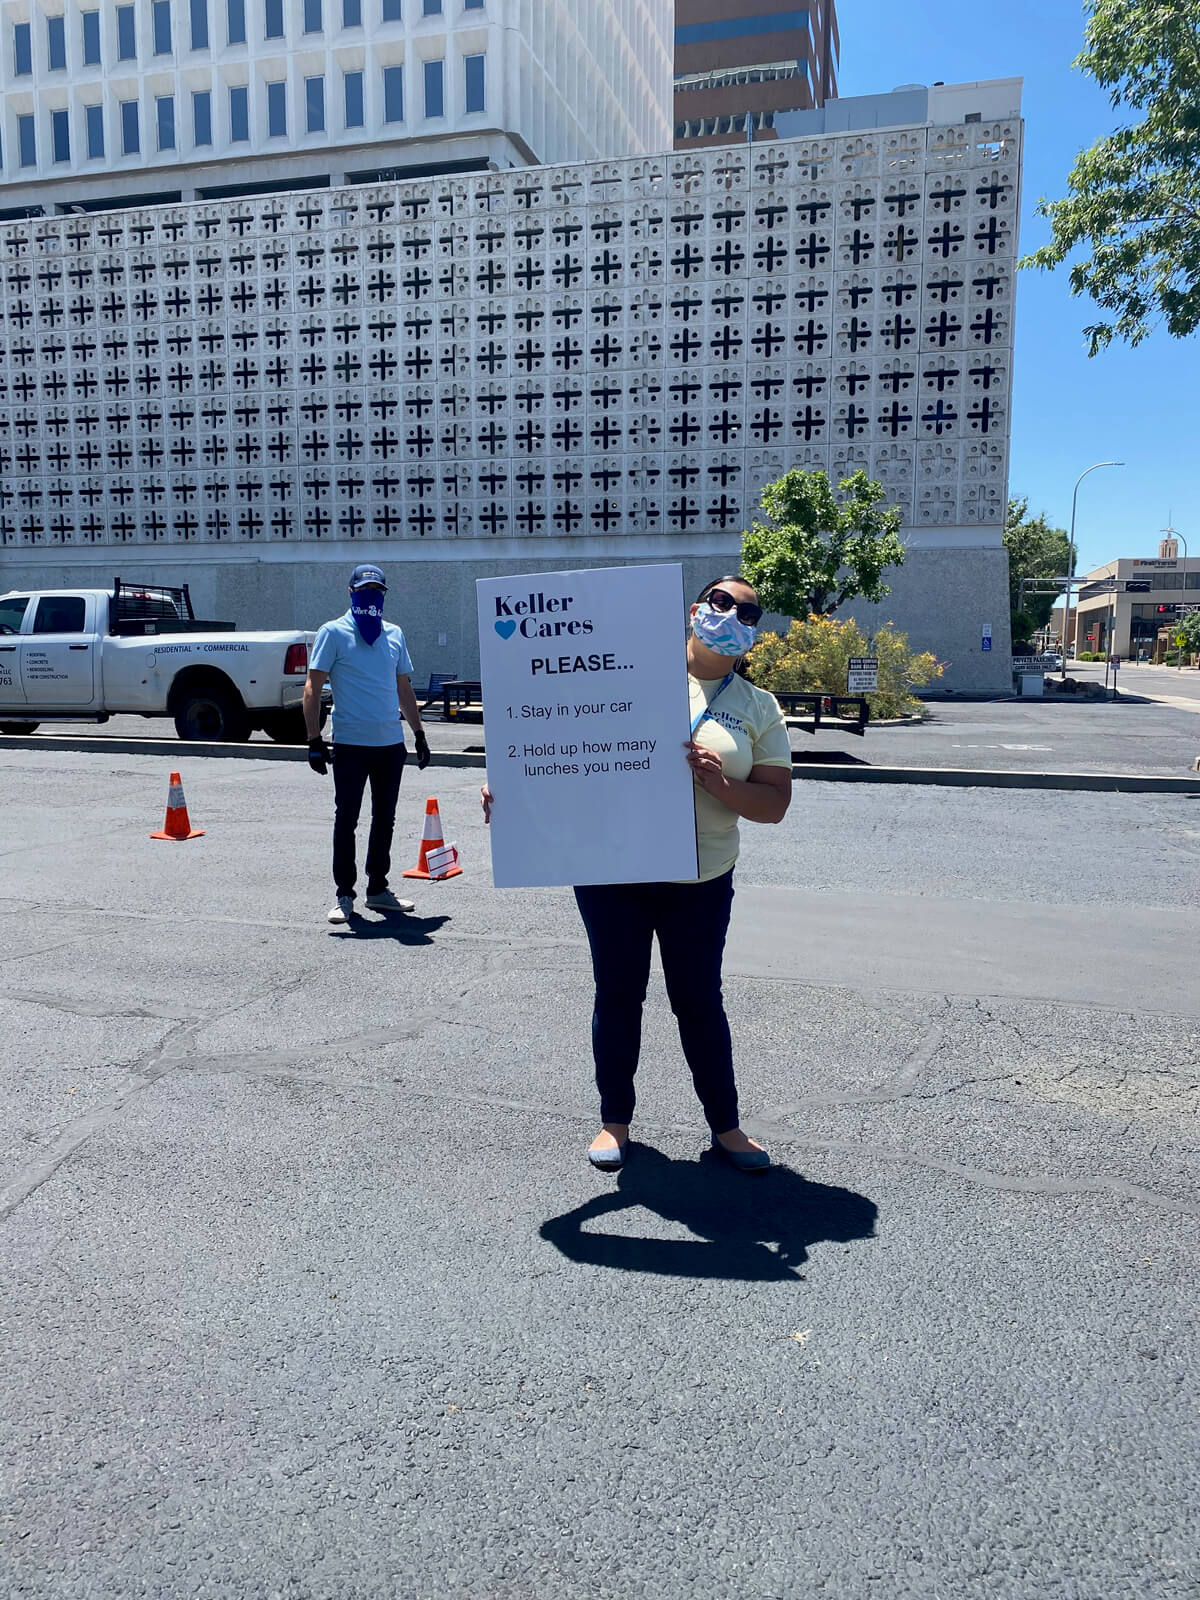 Safety precautions during Keller Cares' Albuquerque lunch giveaway.